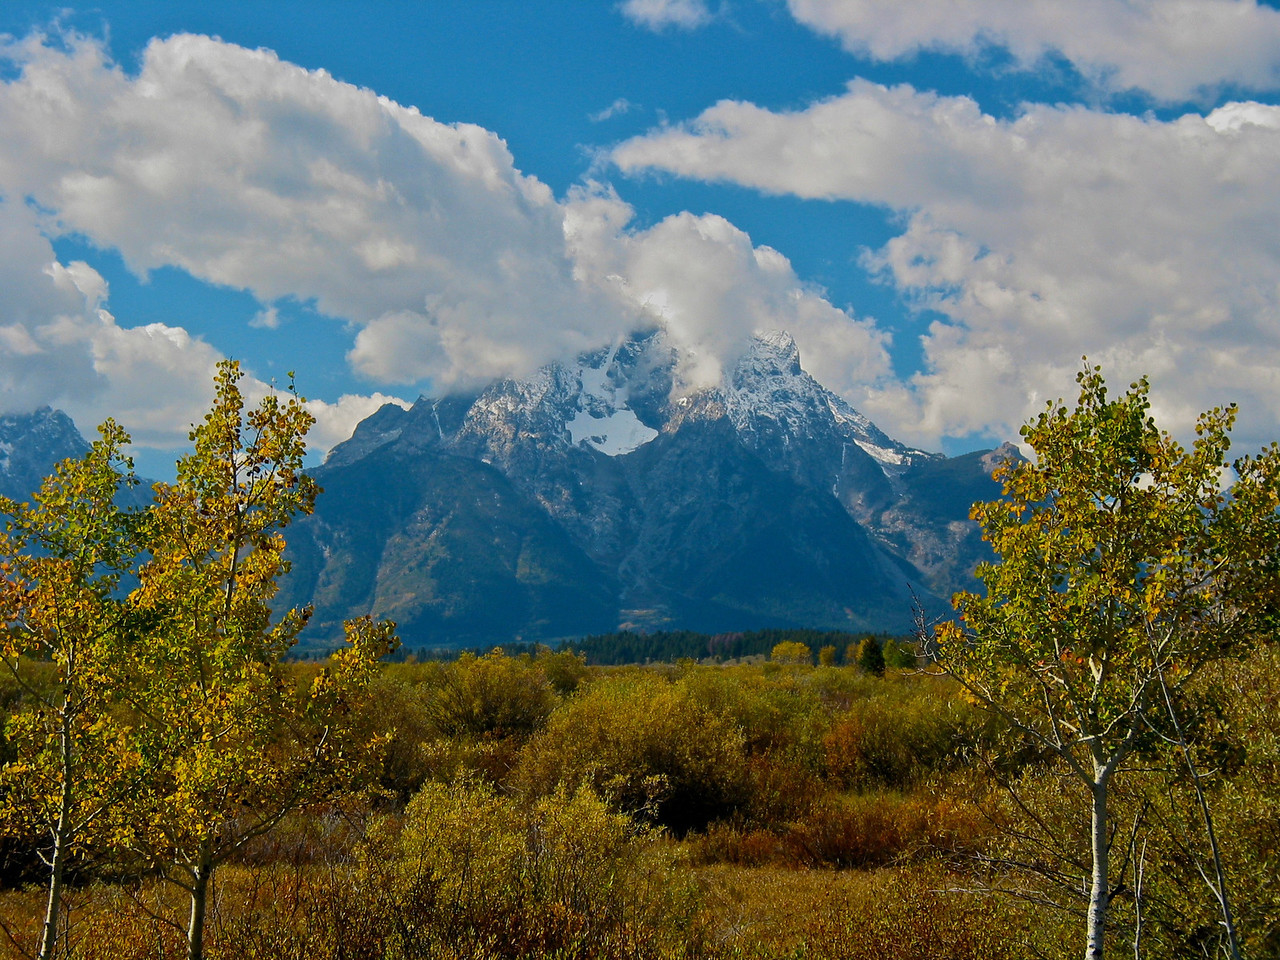 Human history of the Grand Teton region dates back at least 11,000 years, when the first nomadic hunter-gatherer Paleo-Indians would migrate into the region during warmer months in pursuit of food and supplies. In the early 19th century, the first caucasian explorers encountered the eastern Shoshone natives. Between 1810 and 1840, the region attracted various fur trading companies which vied for control of the lucrative beaver fur. Organized U.S. Government explorations to the region commenced in the 1870s as an offshoot of exploration in Yellowstone.